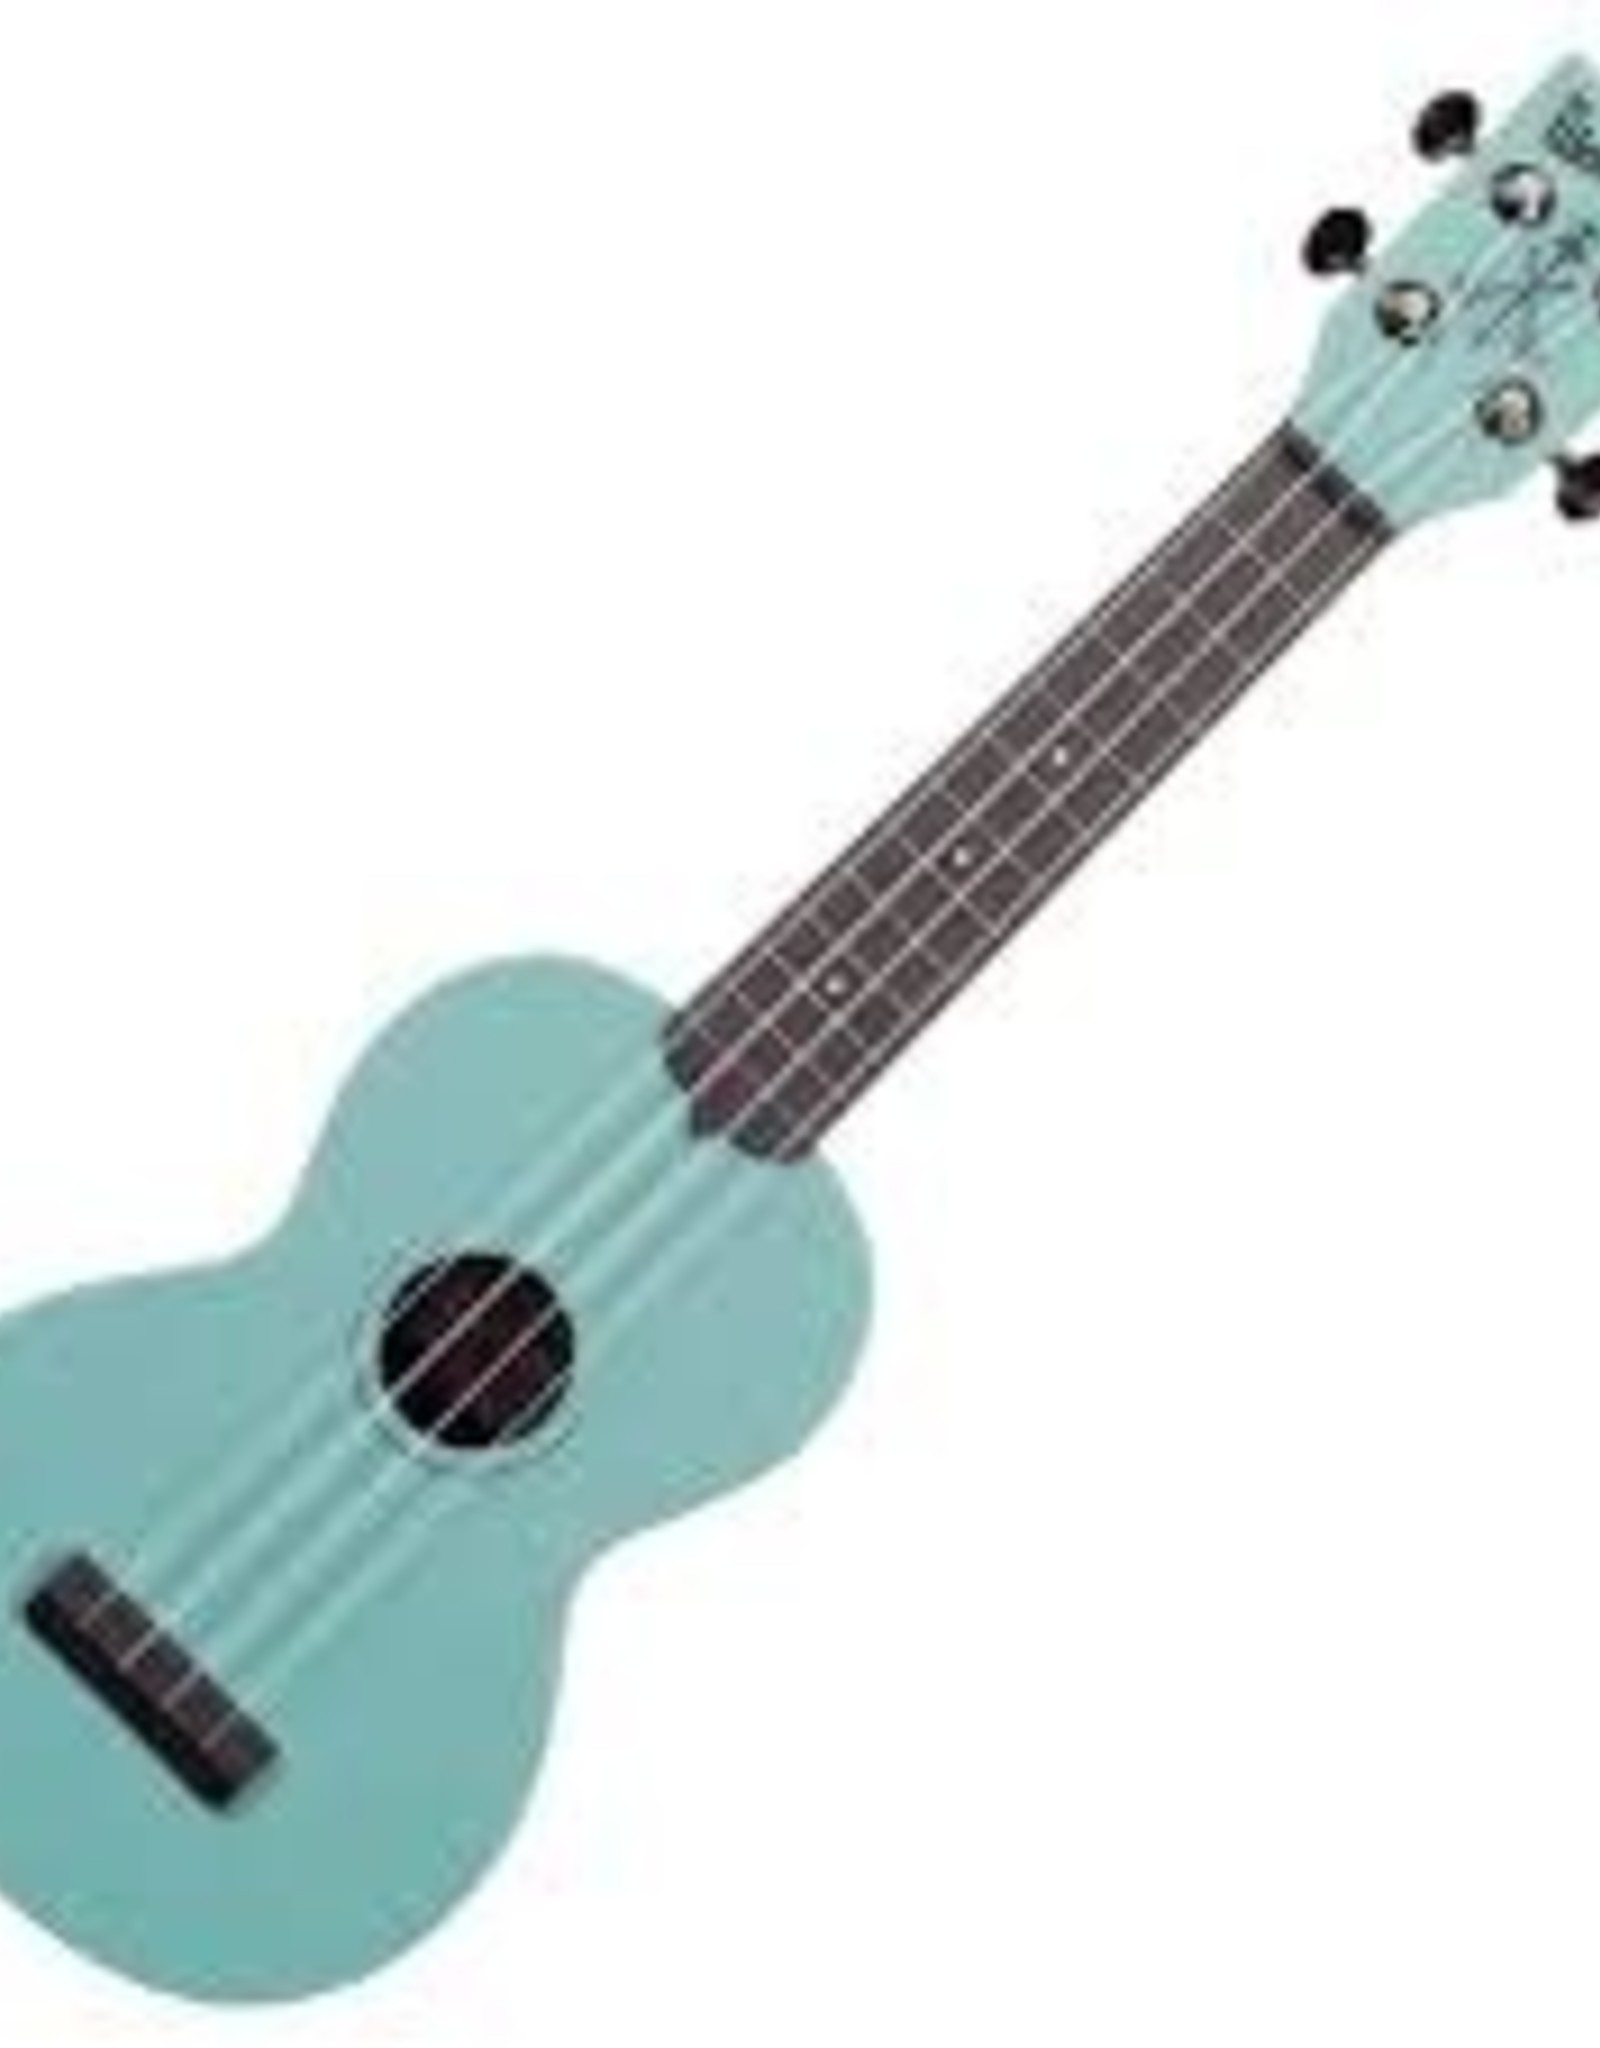 Kala Waterman Glow in the Dark Blue Soprano Ukulele